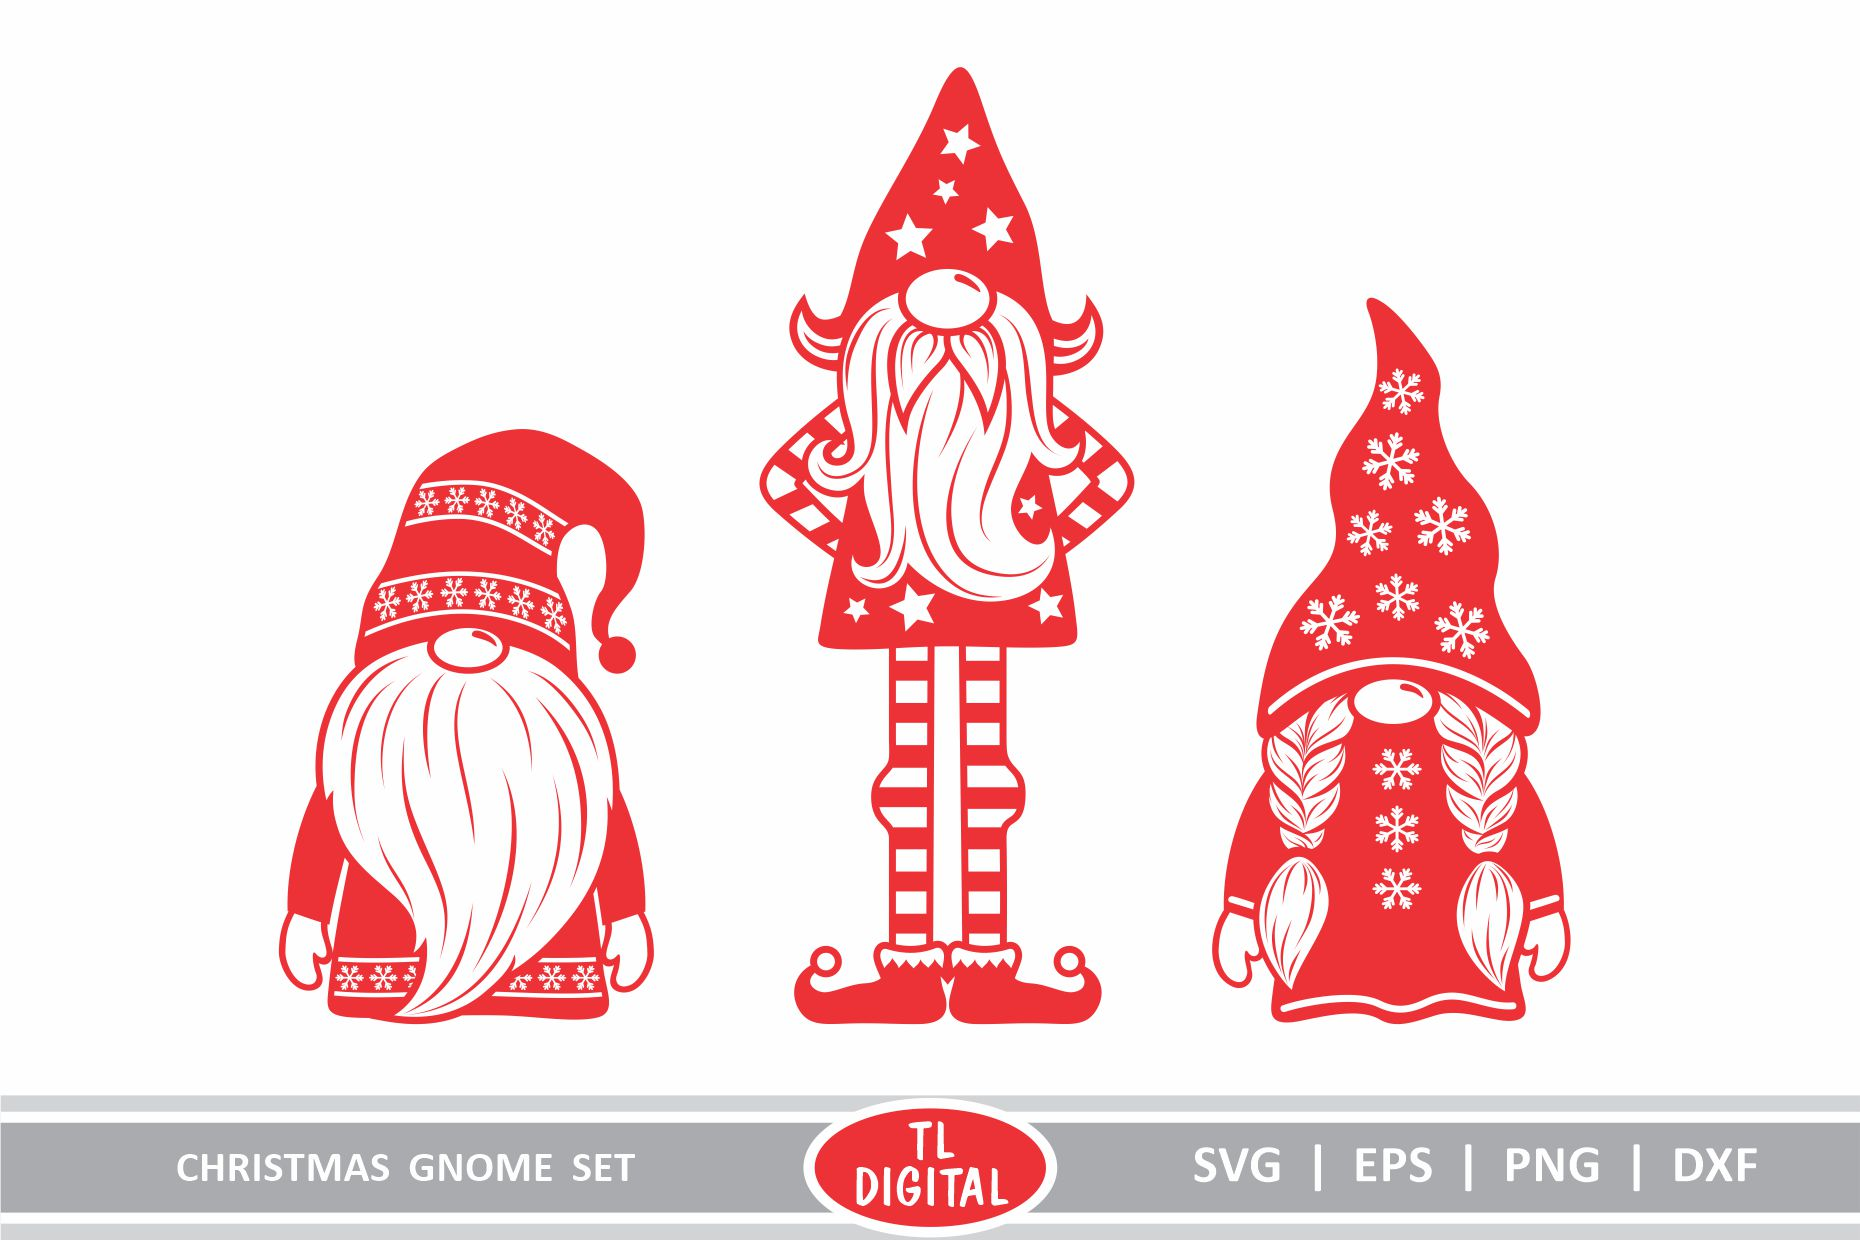 Download Free Christmas Gnomes Set Of 3 Graphic By Tl Digital Creative Fabrica for Cricut Explore, Silhouette and other cutting machines.